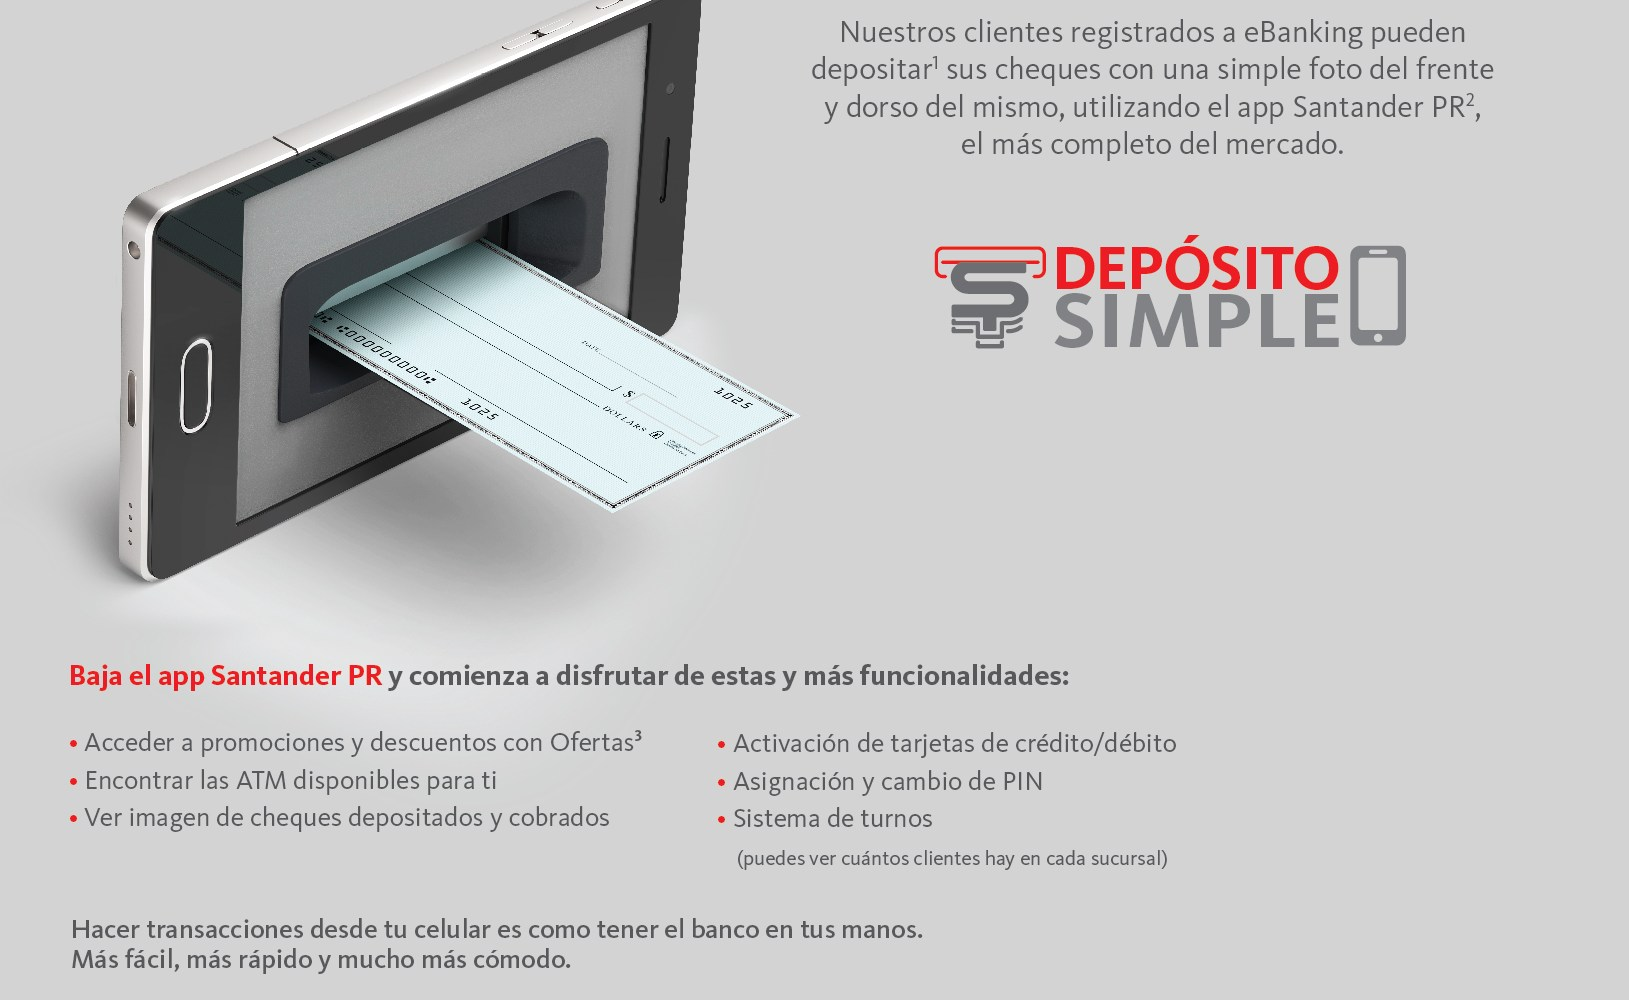 santander launches depósito simple mobile check deposit service